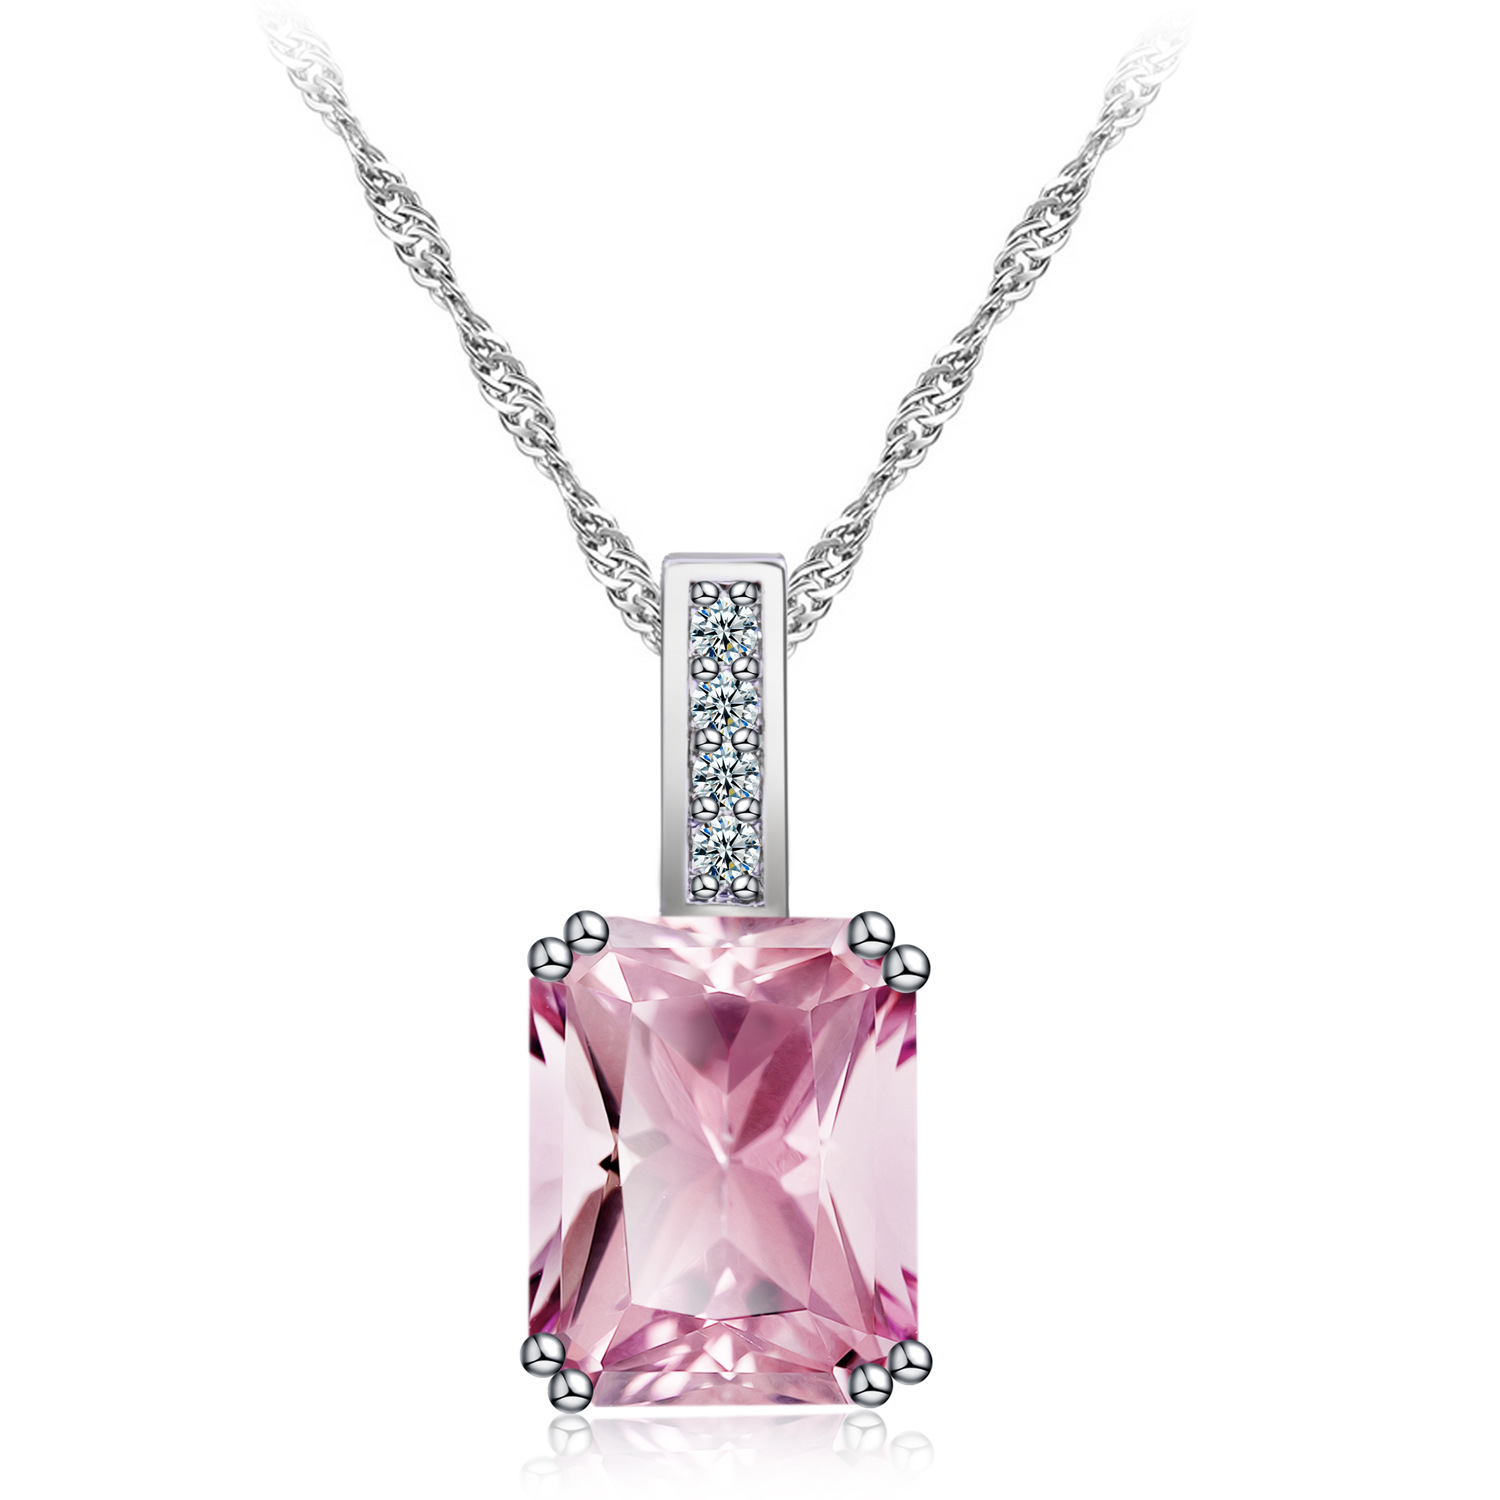 Korean Style Necklace Jewelry Pink Party Zirconium Necklace Selling Jewelry Necklace